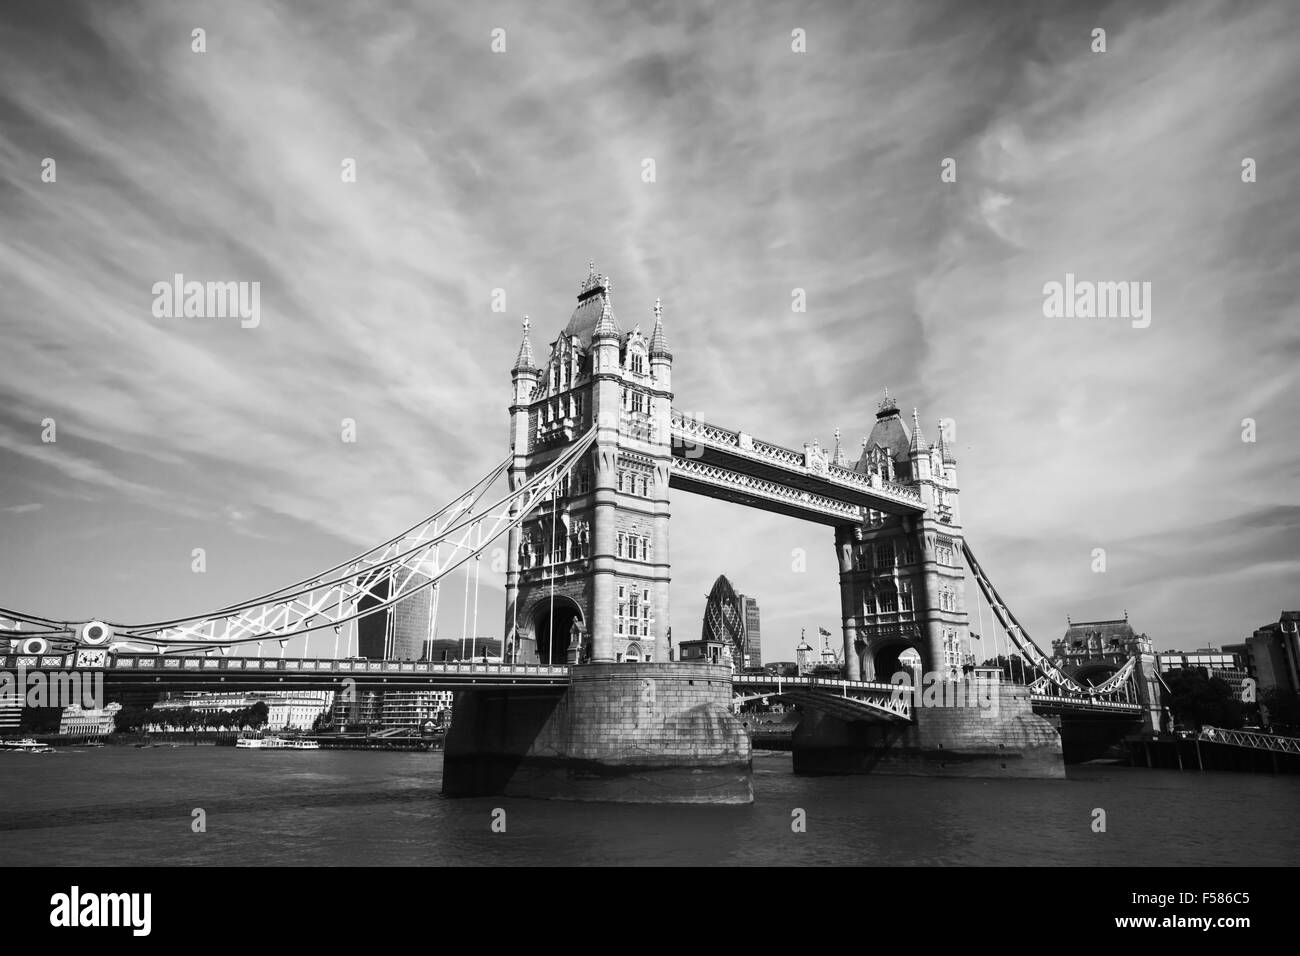 monochrome view of Tower Bridge in London - Stock Image